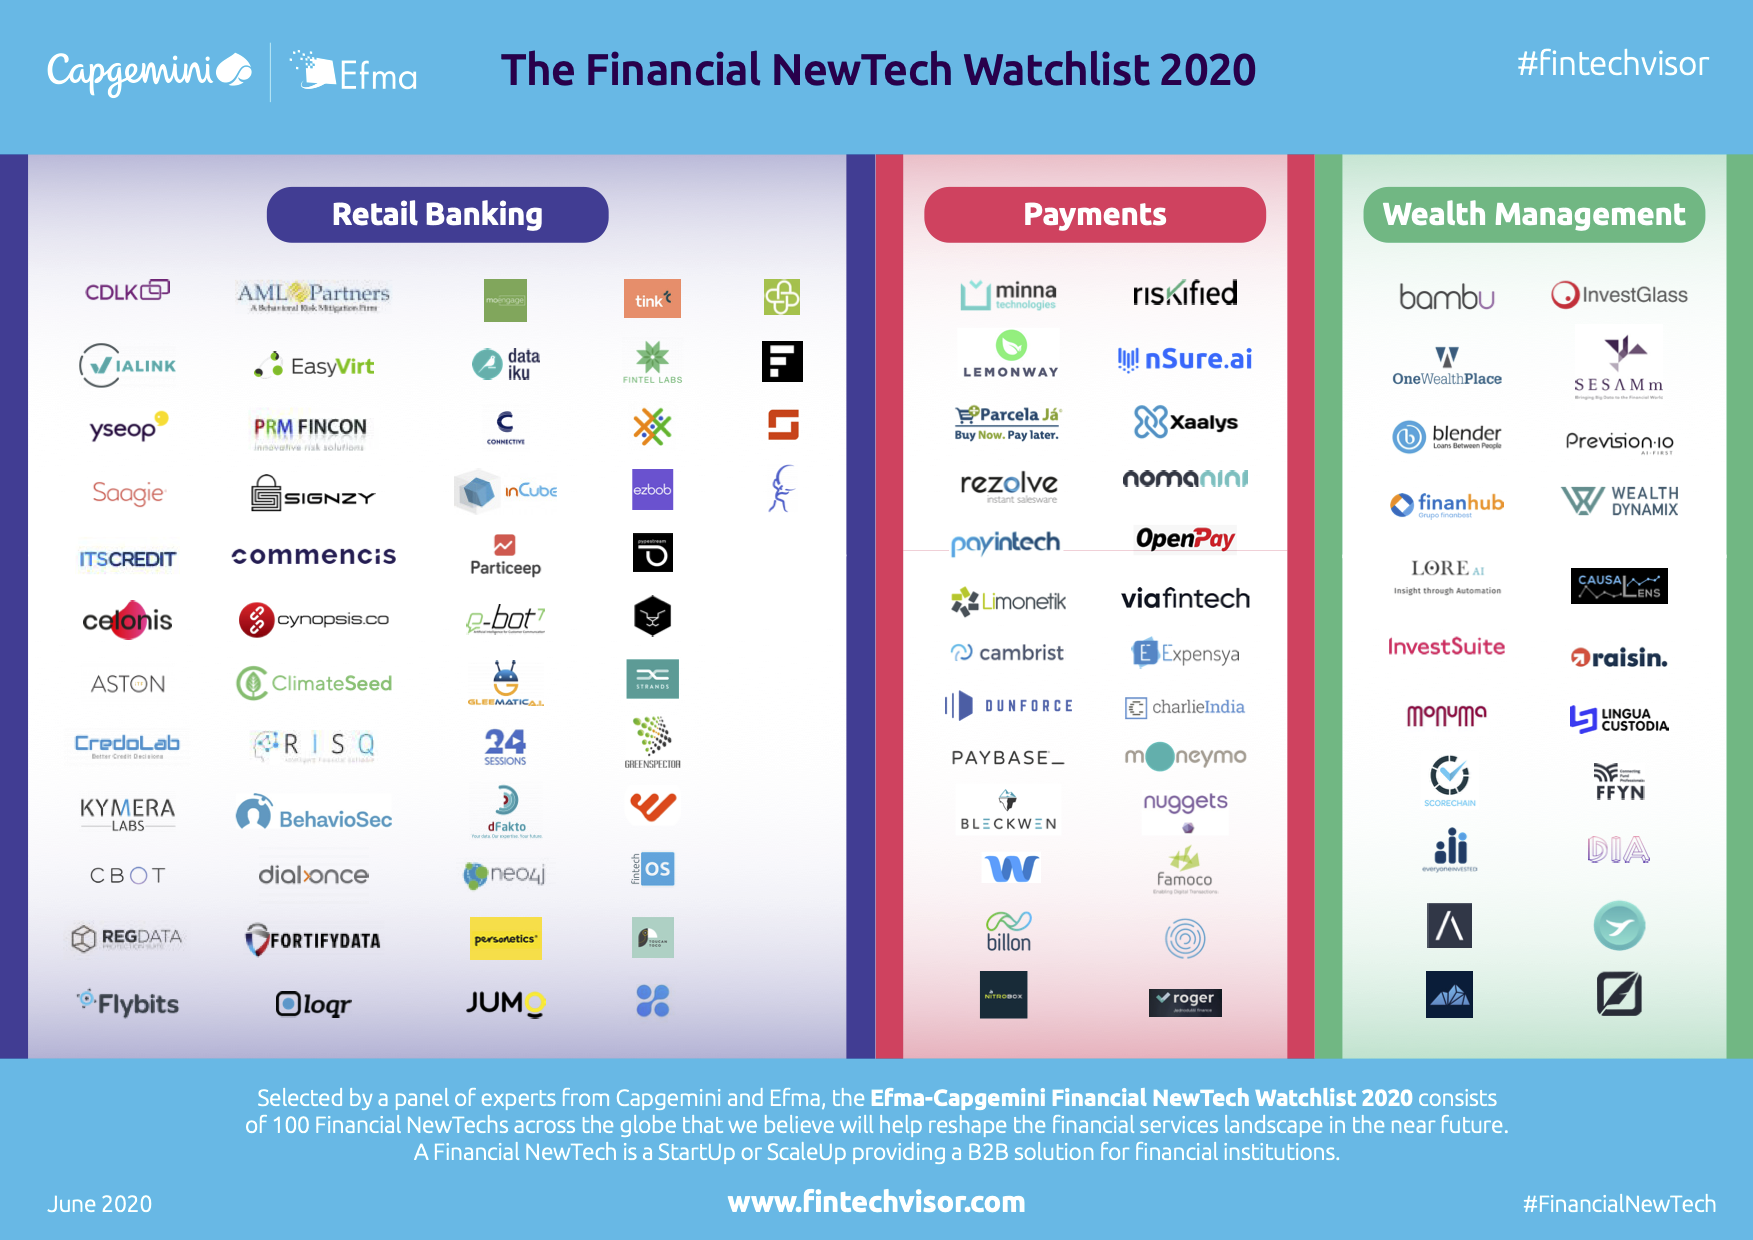 The Financial NewTech Watchlist 2020, Efma and Capgemini, May 2020